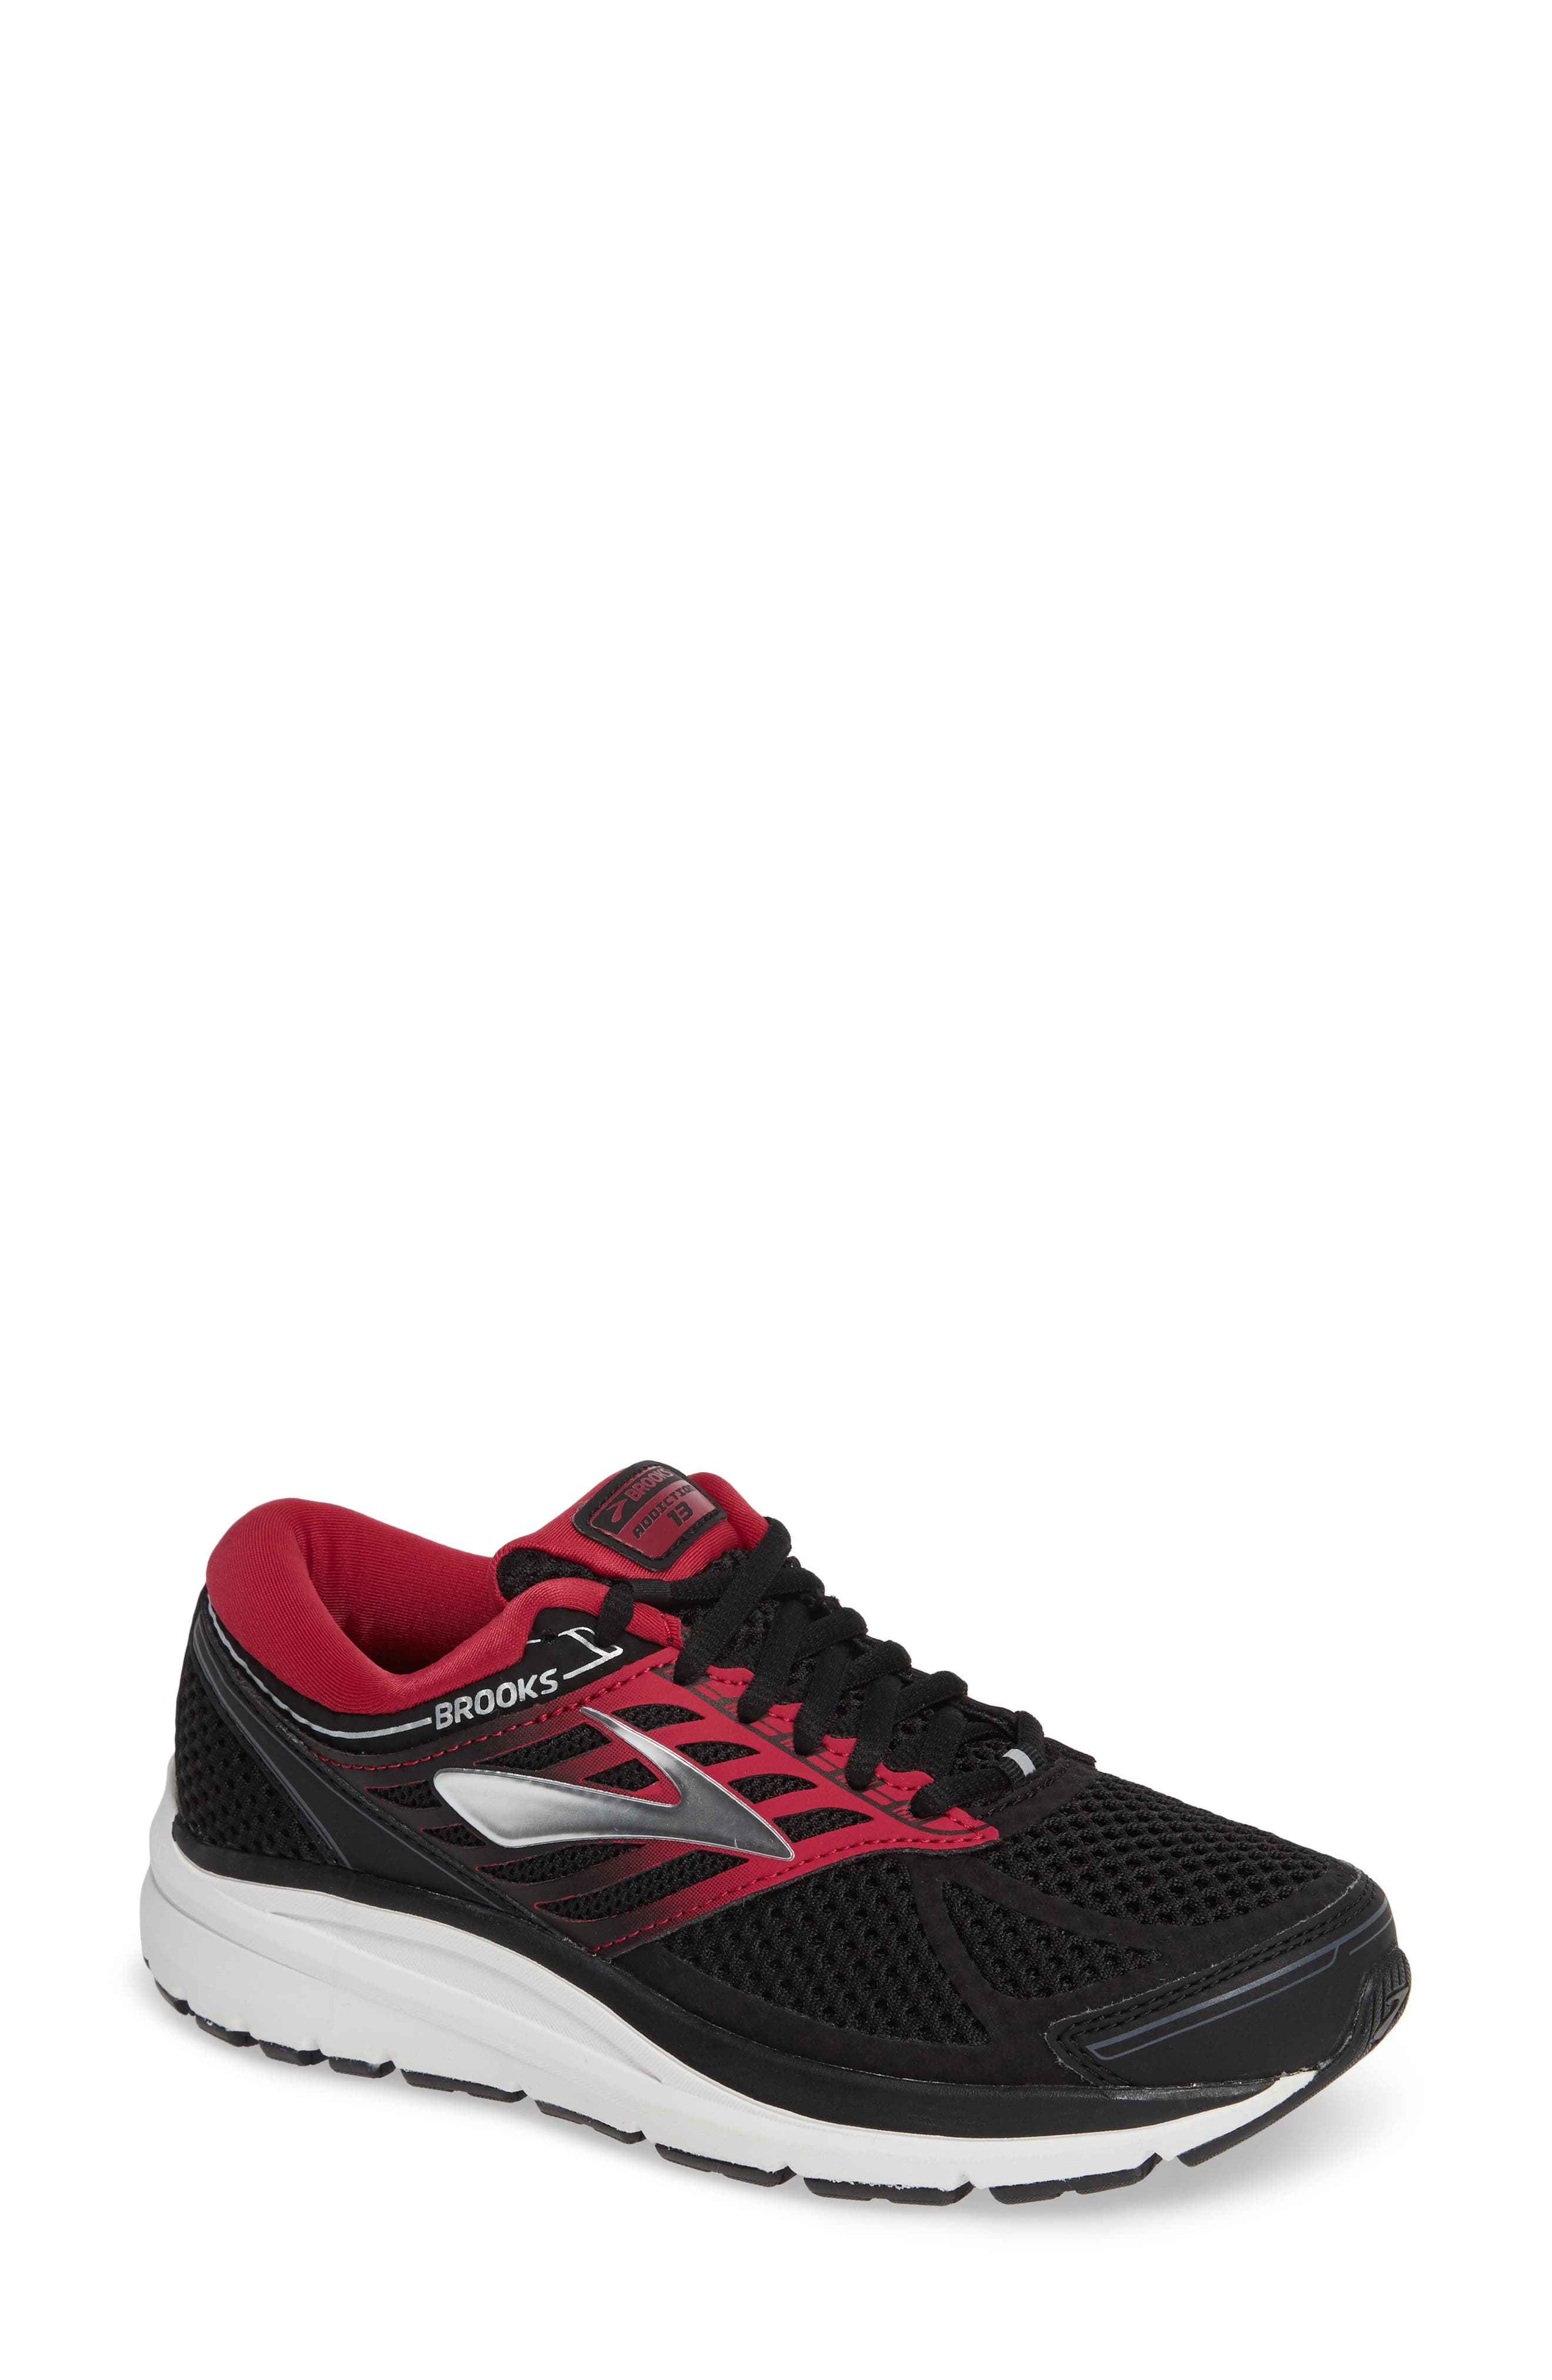 Image of Brooks Addition 13 Running Shoe - Multiple Widths Available